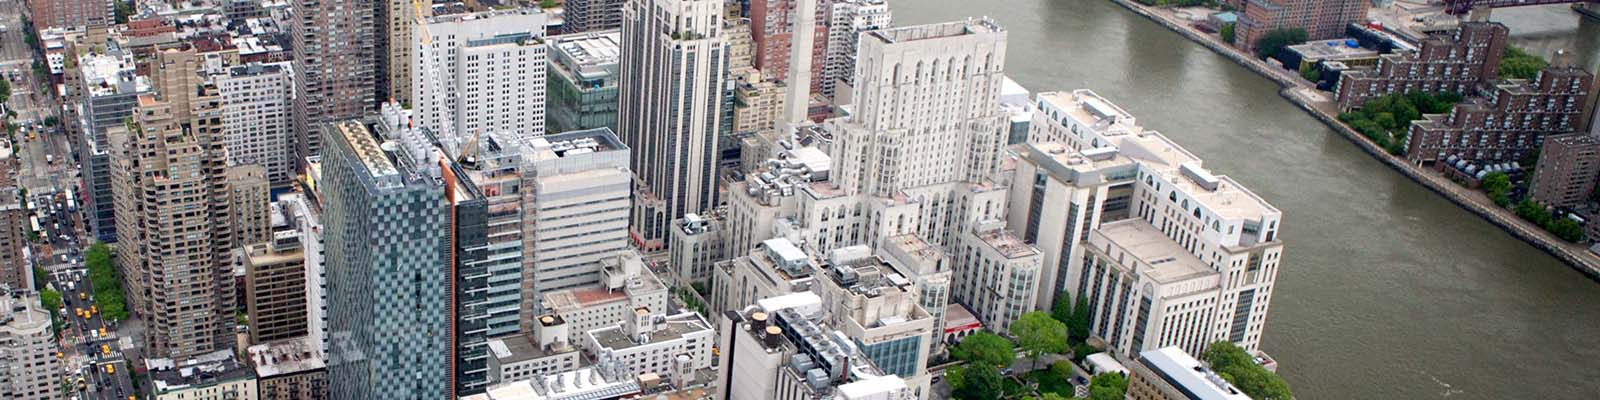 Aerial view of Weill Cornell Medicine's Upper East Side location.